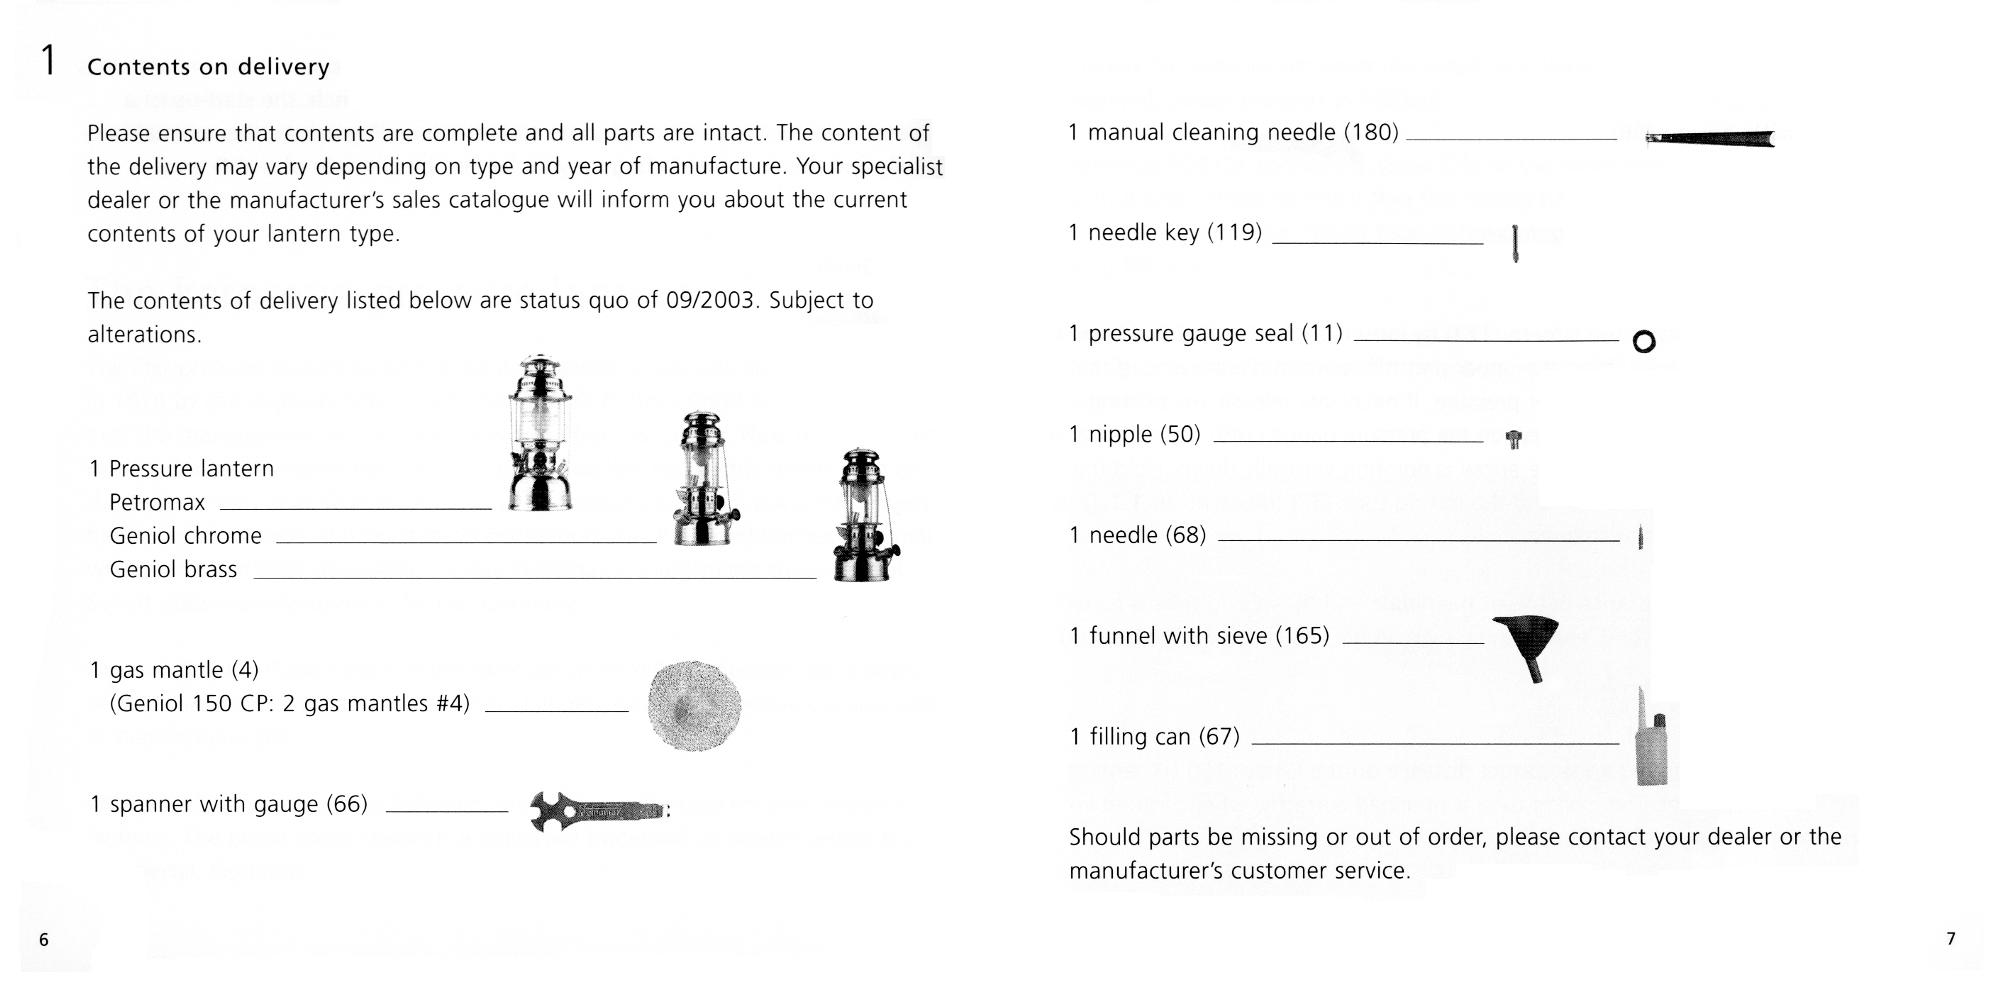 Petromax Instructions page 06 and 07